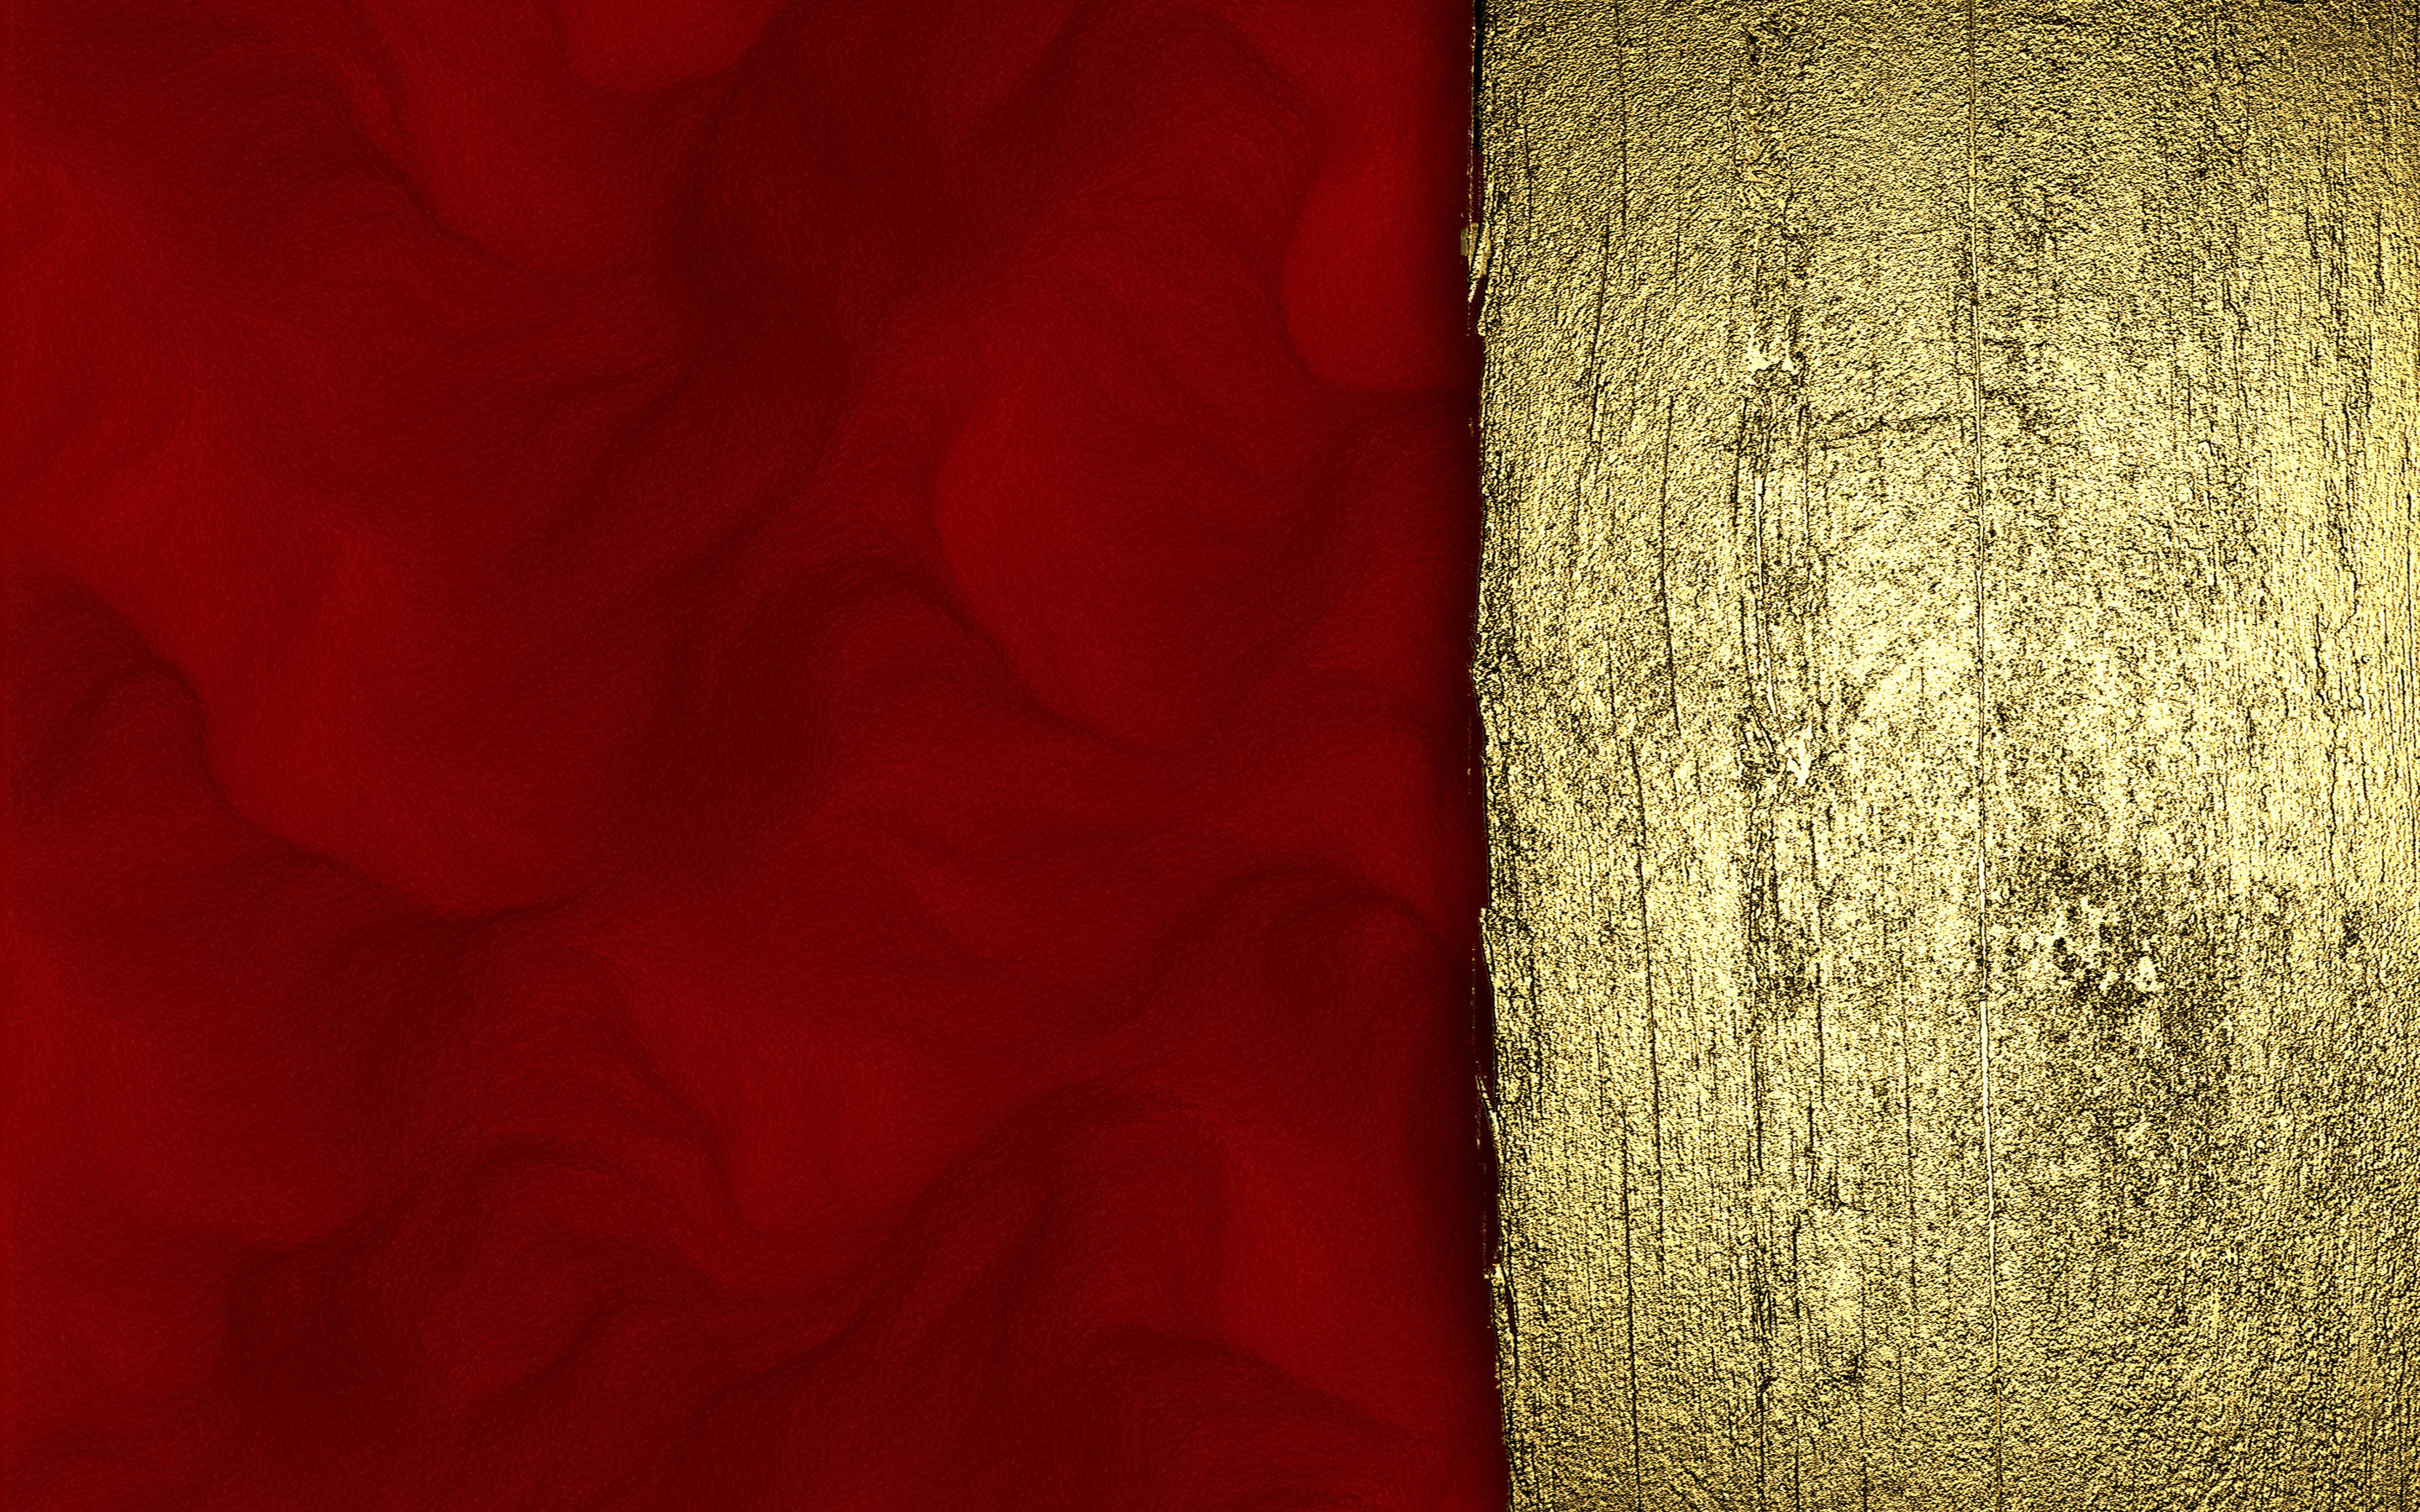 red and gold background images hd red and gold b 2880x1800